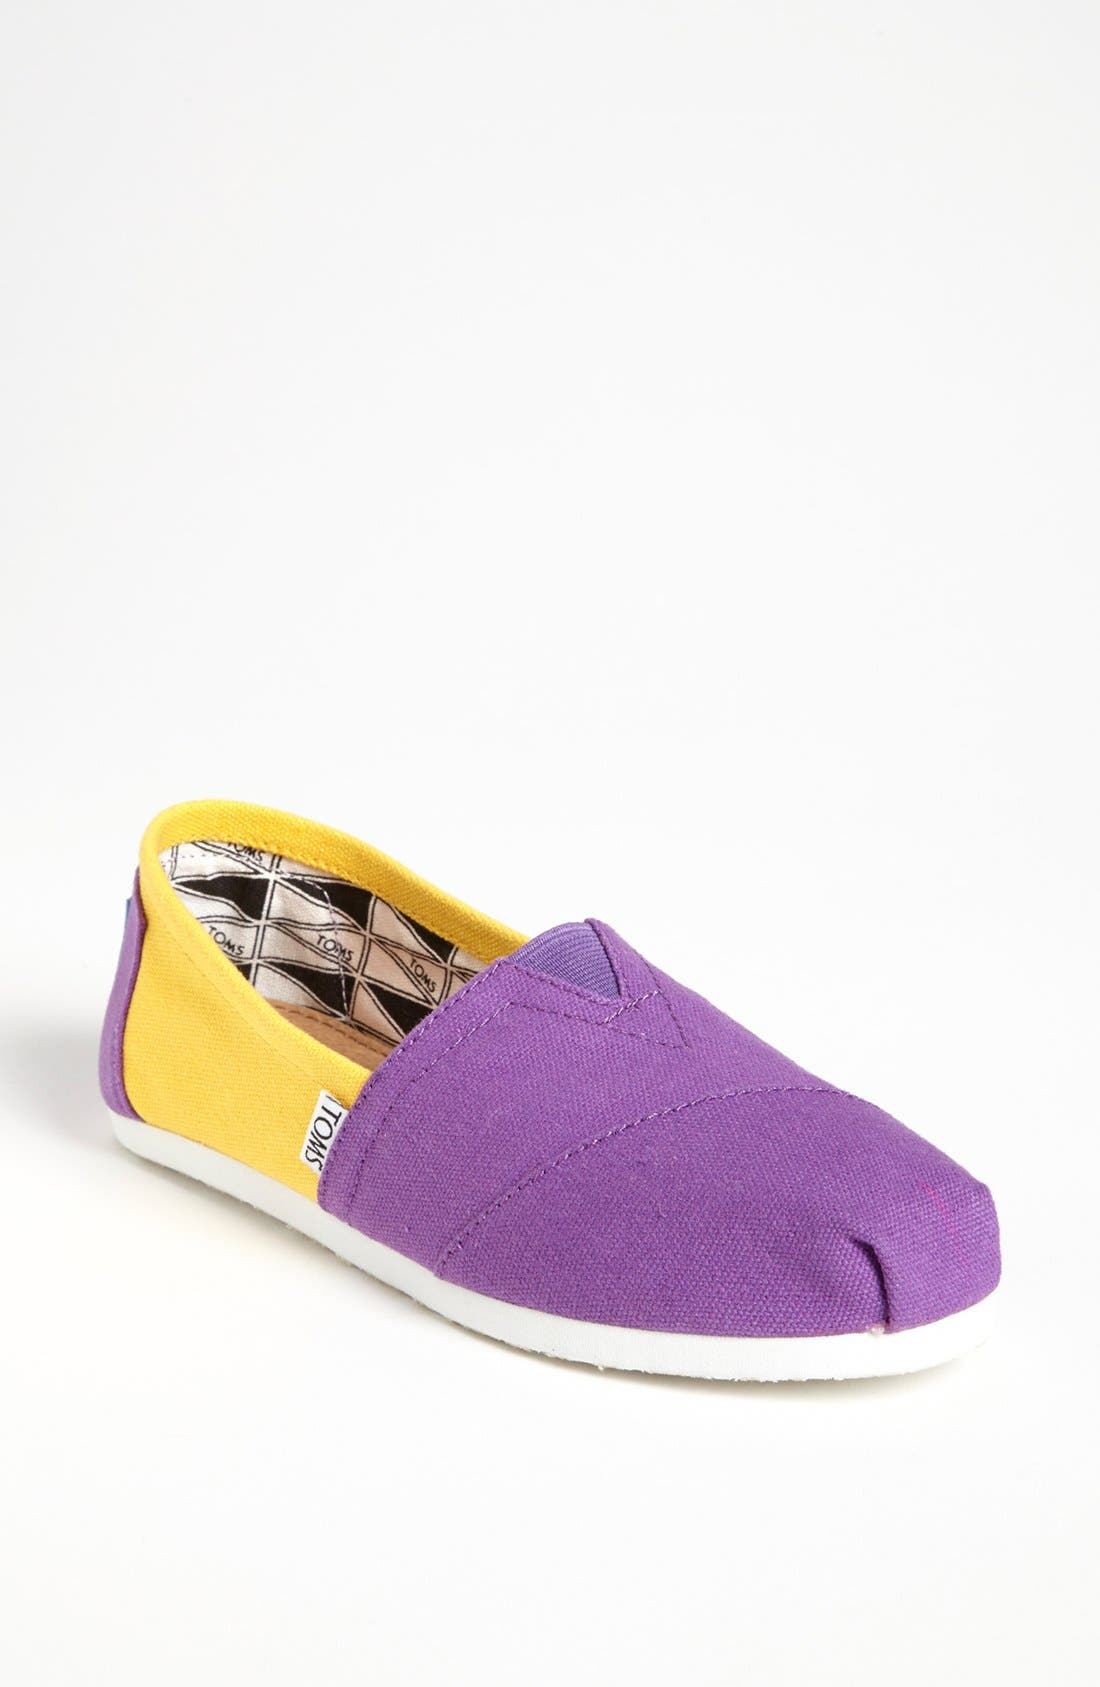 Alternate Image 1 Selected - TOMS 'Campus Classics - Louisiana State' Slip-On (Women)